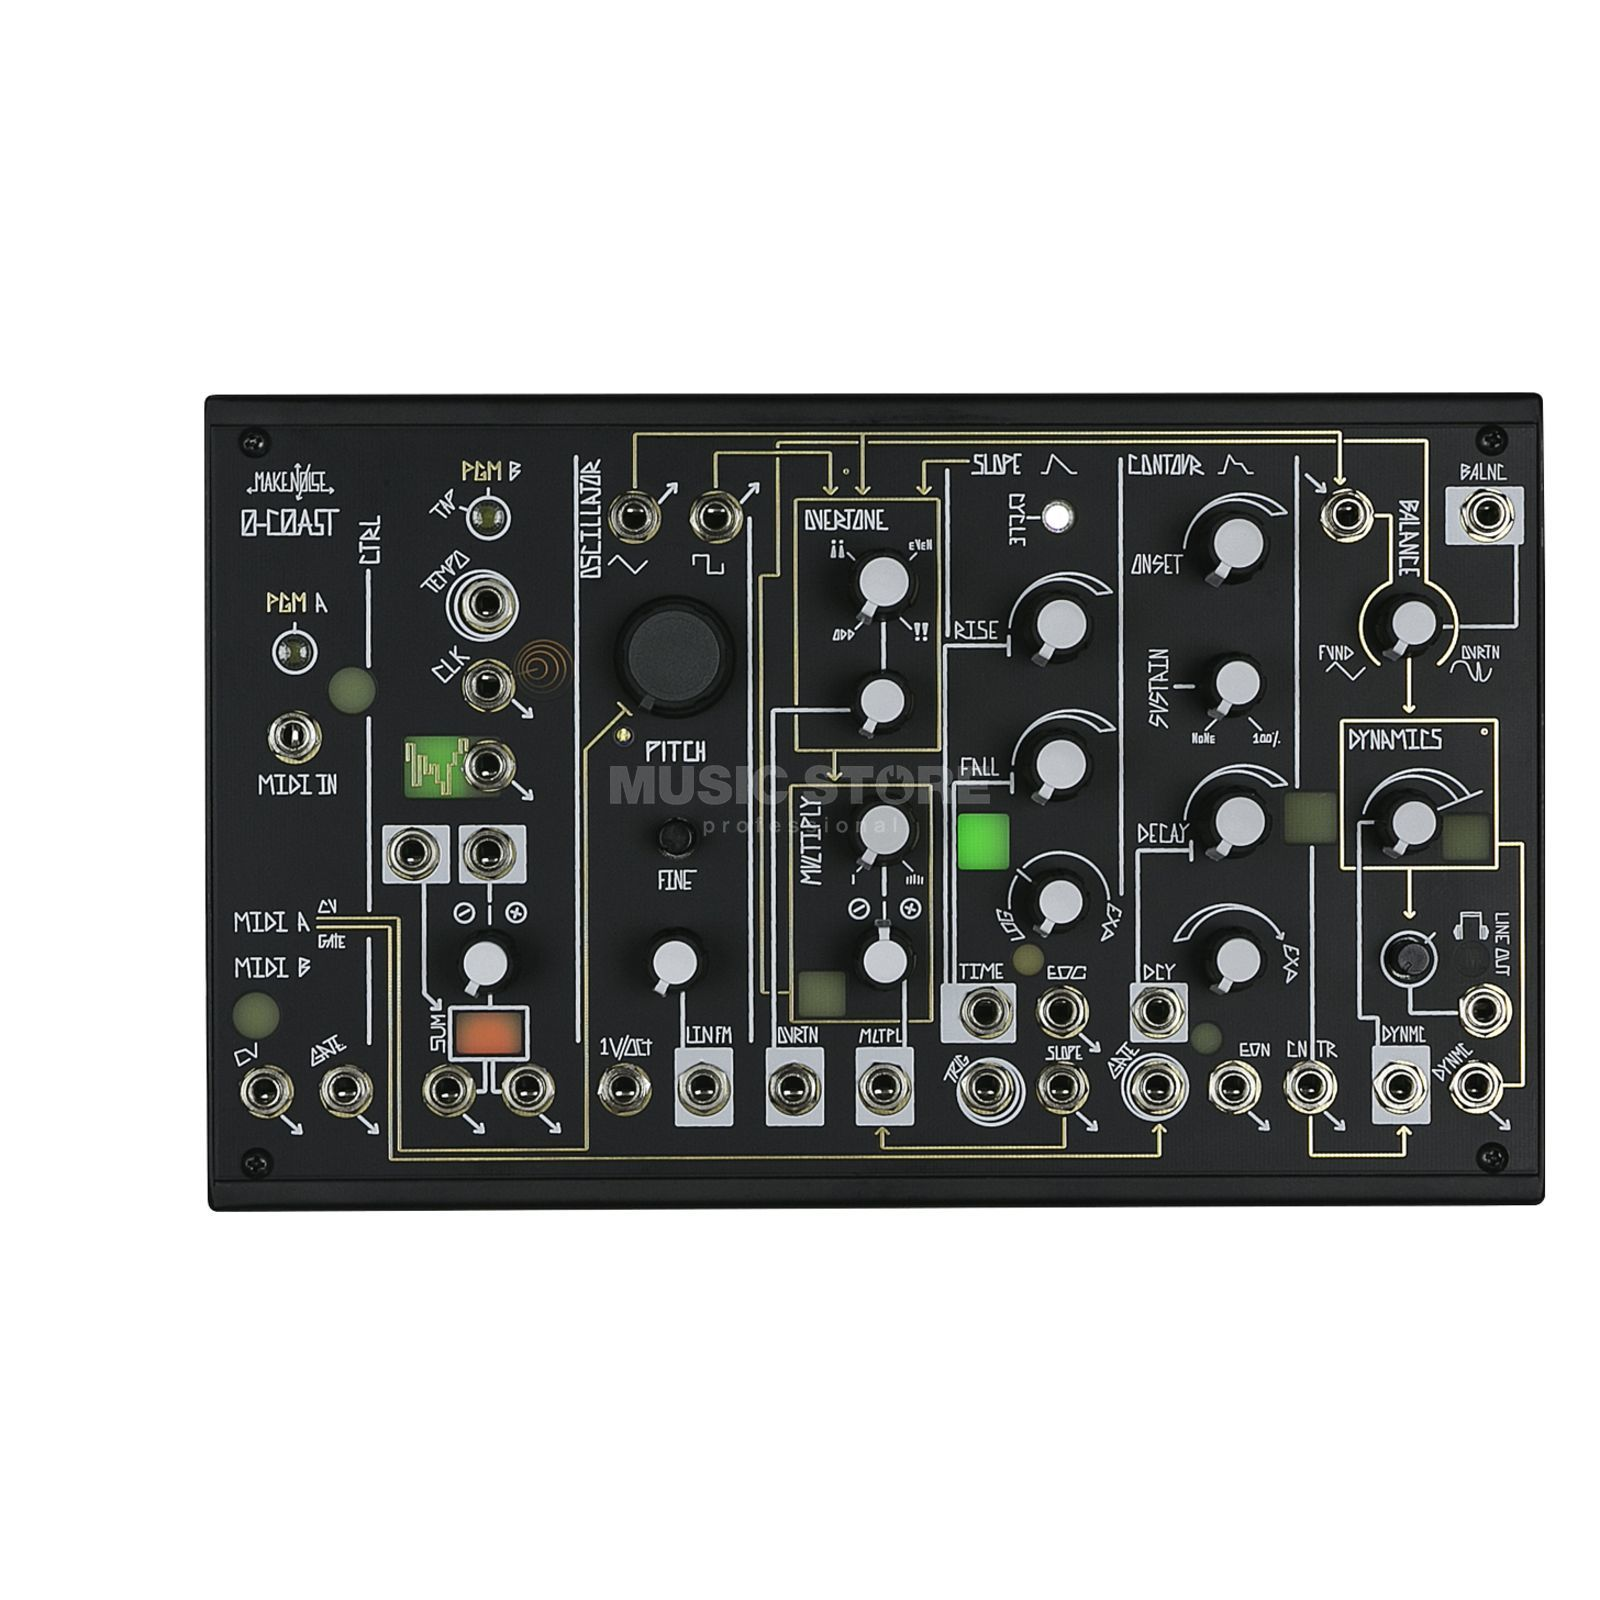 Make Noise 0-COAST Patchable Mono Synthesizer Product Image